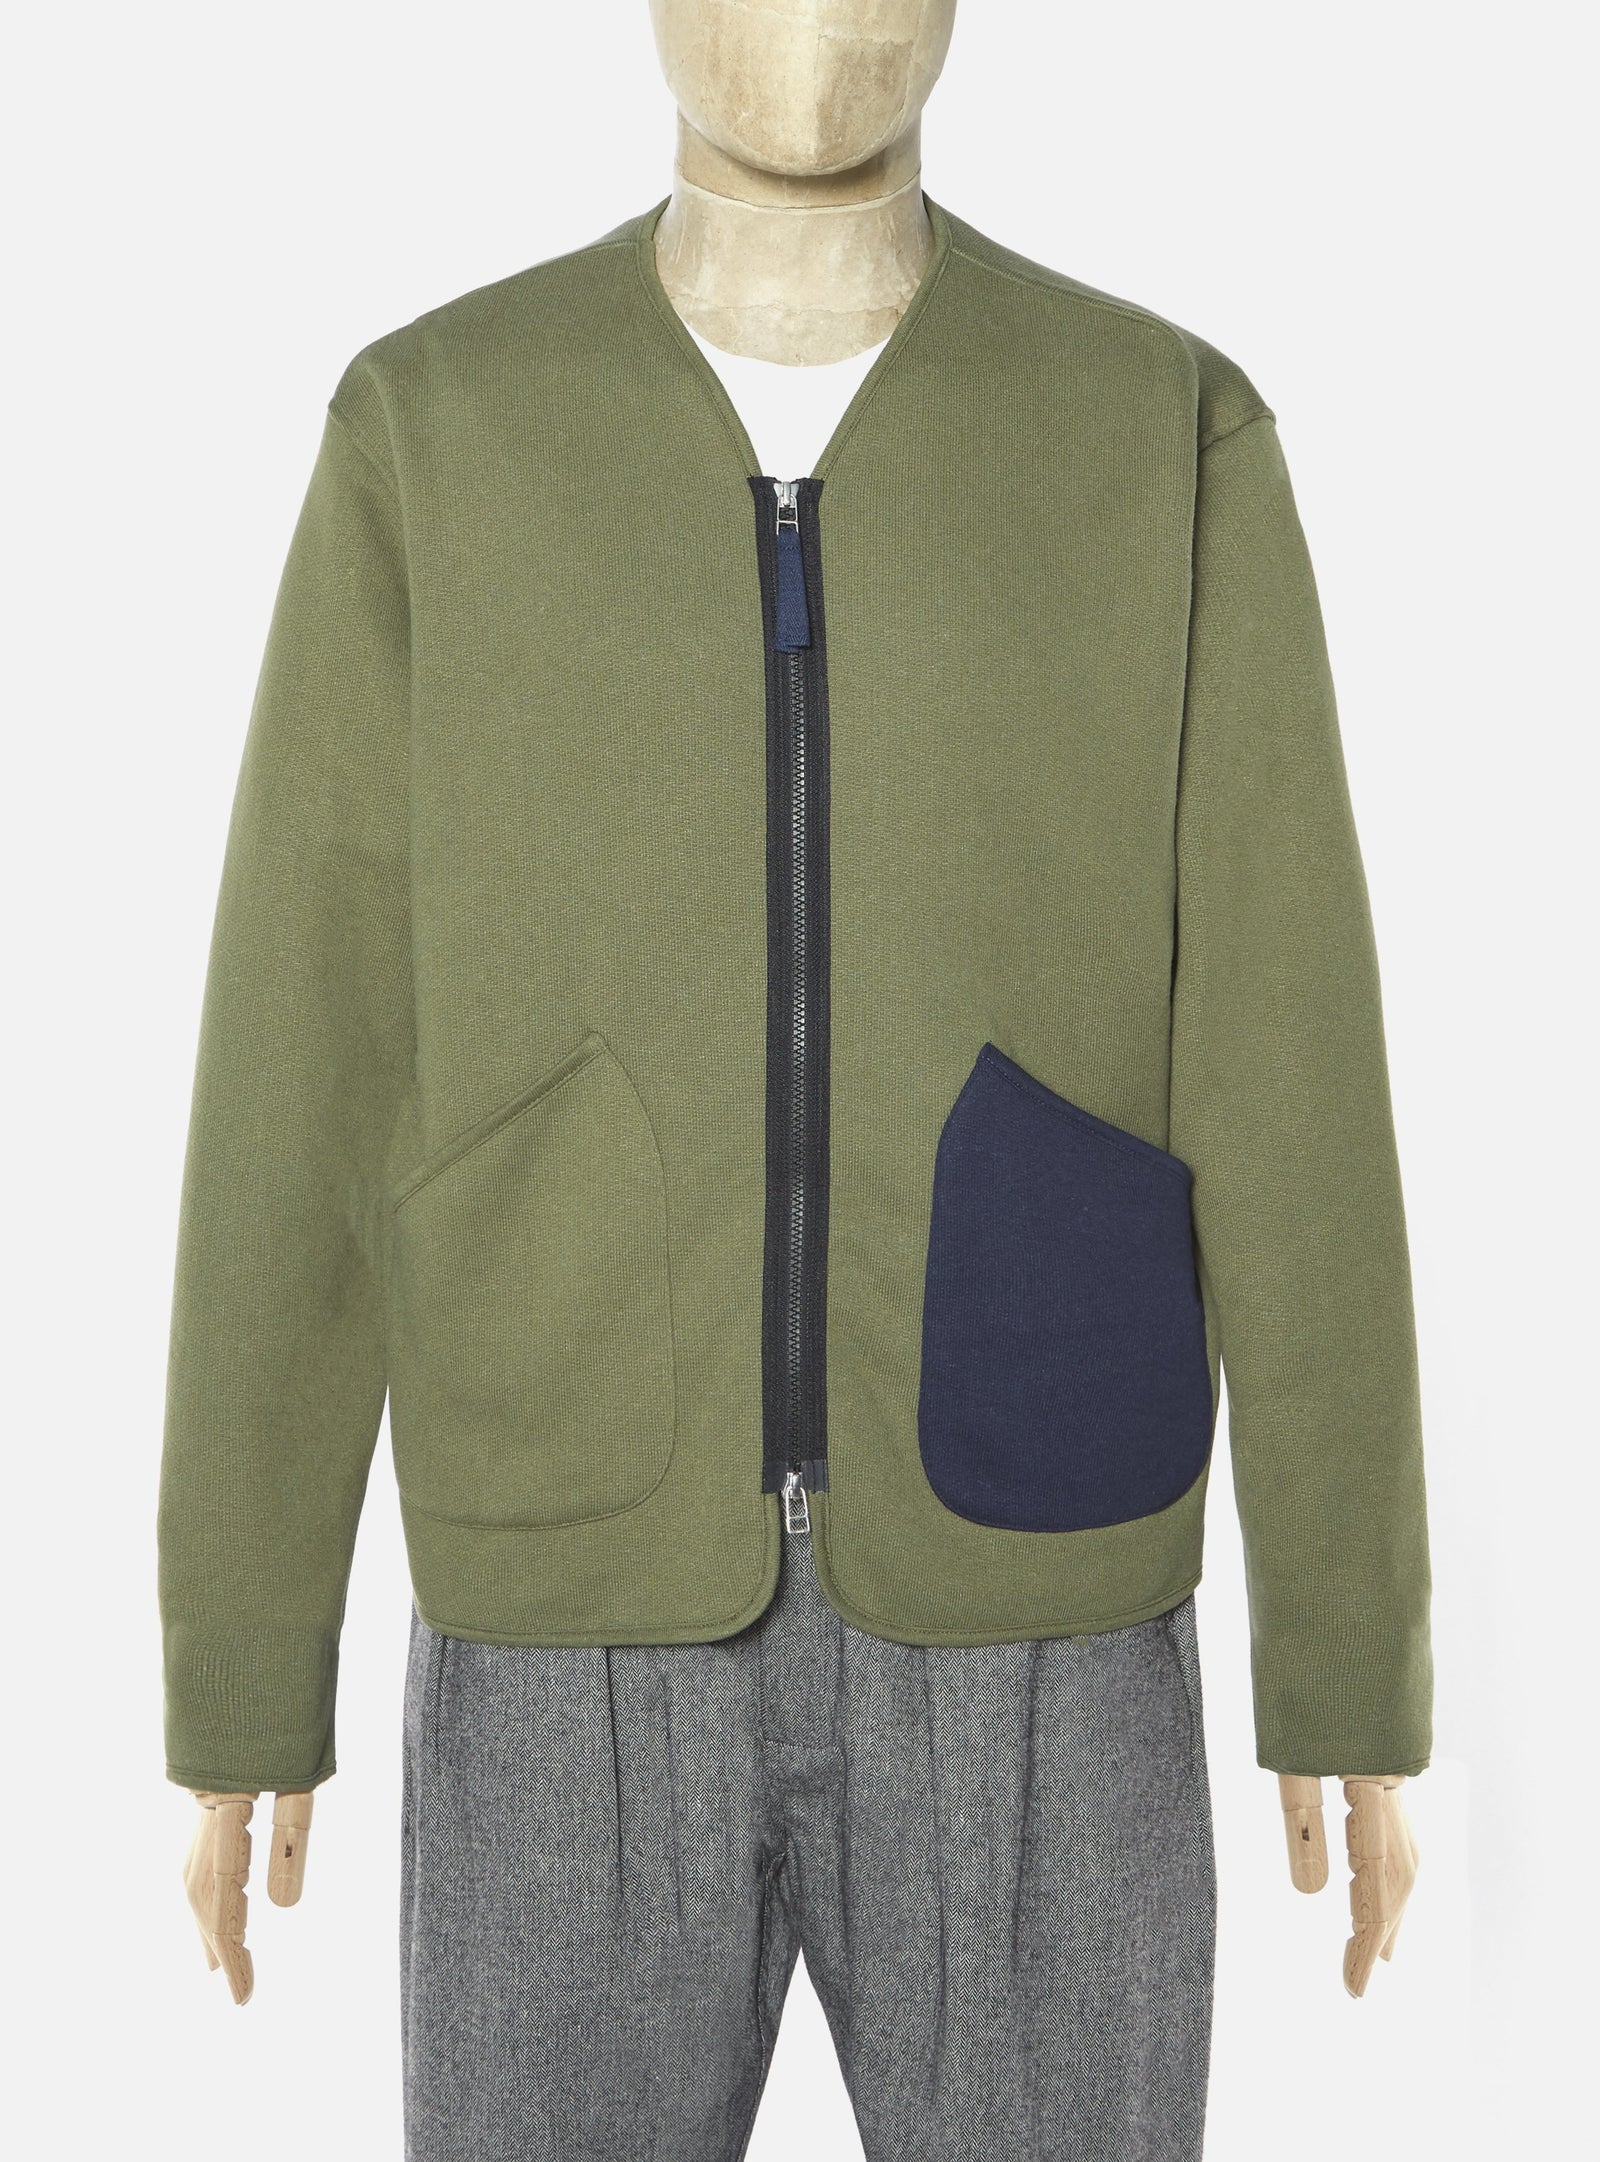 Universal Works Zip Liner Jacket in Olive Organic Mix Fleece